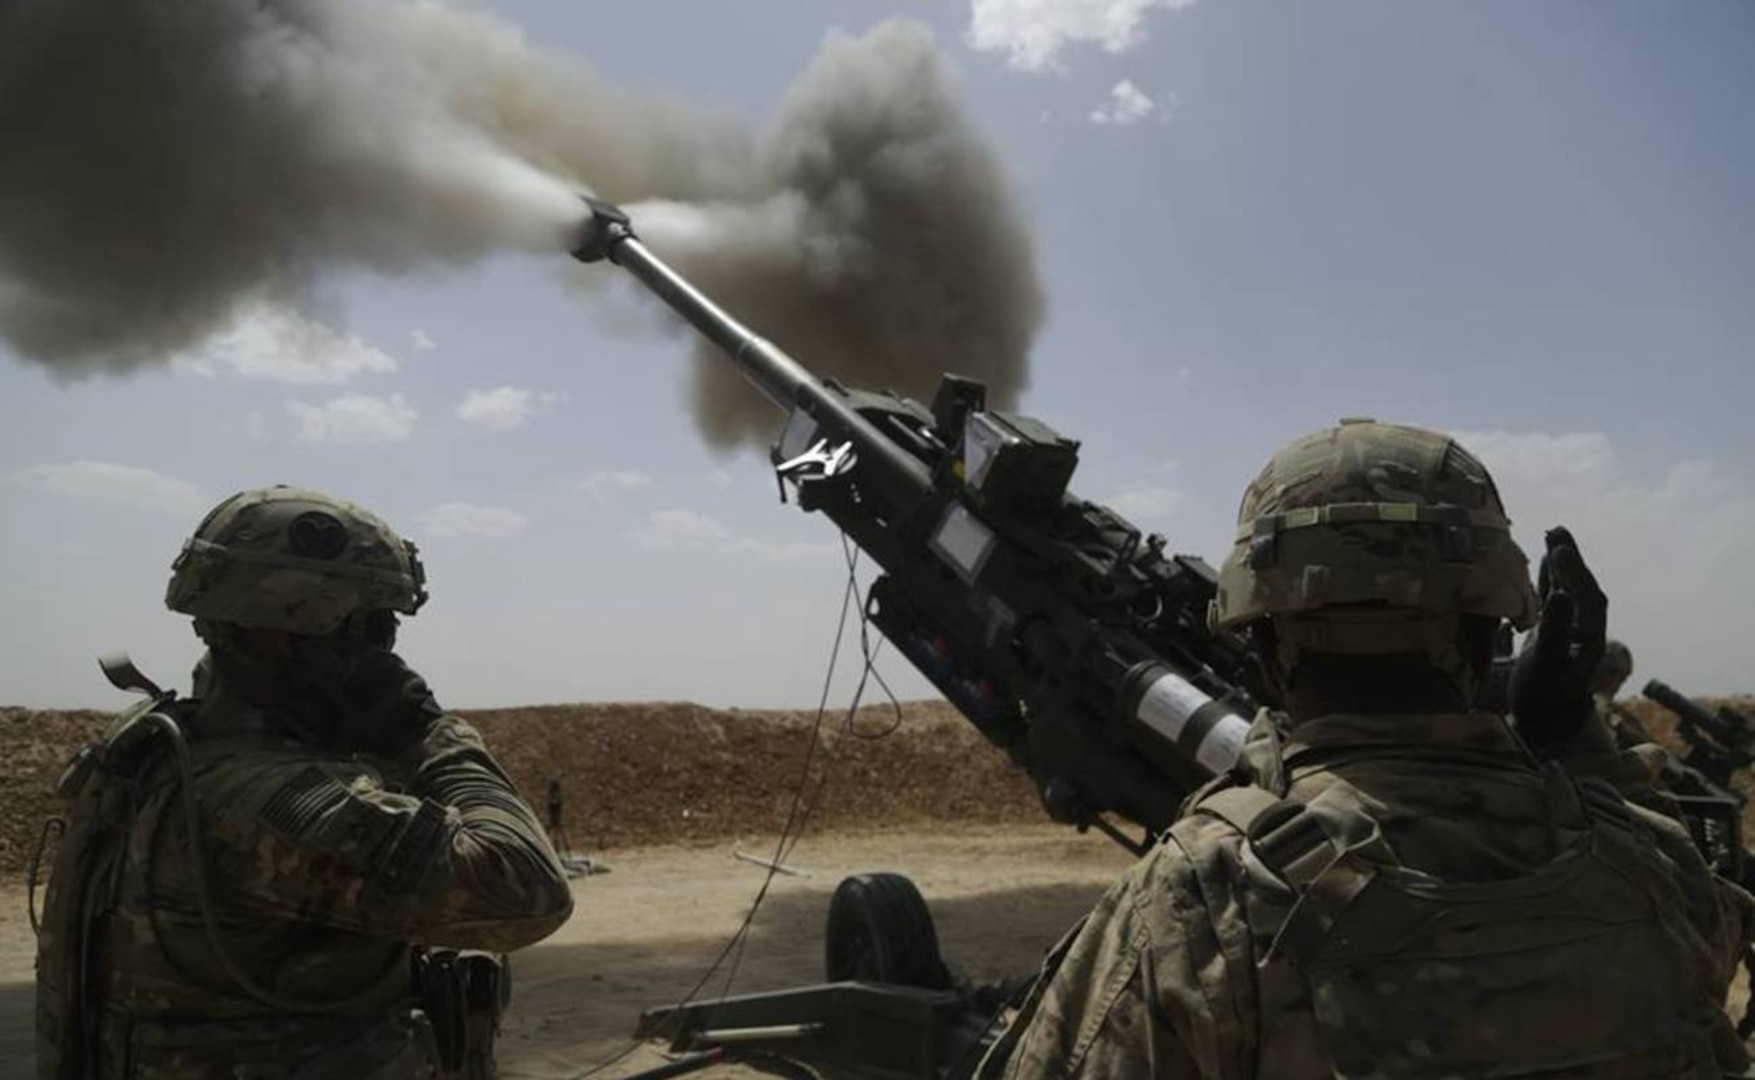 U.S. Soldiers with 1st Battalion, 320th Field Artillery Regiment, 2nd Brigade Combat Team, 101st Airborne Division (Air Assault), fire an M777 howitzer at Kara Soar Base, Iraq,in May. According to Defense Secretary Ash Carter, they'll be joined soon by an additional 560 U.S. troops.  (U.S Army photo by Sgt. Paul Sale)